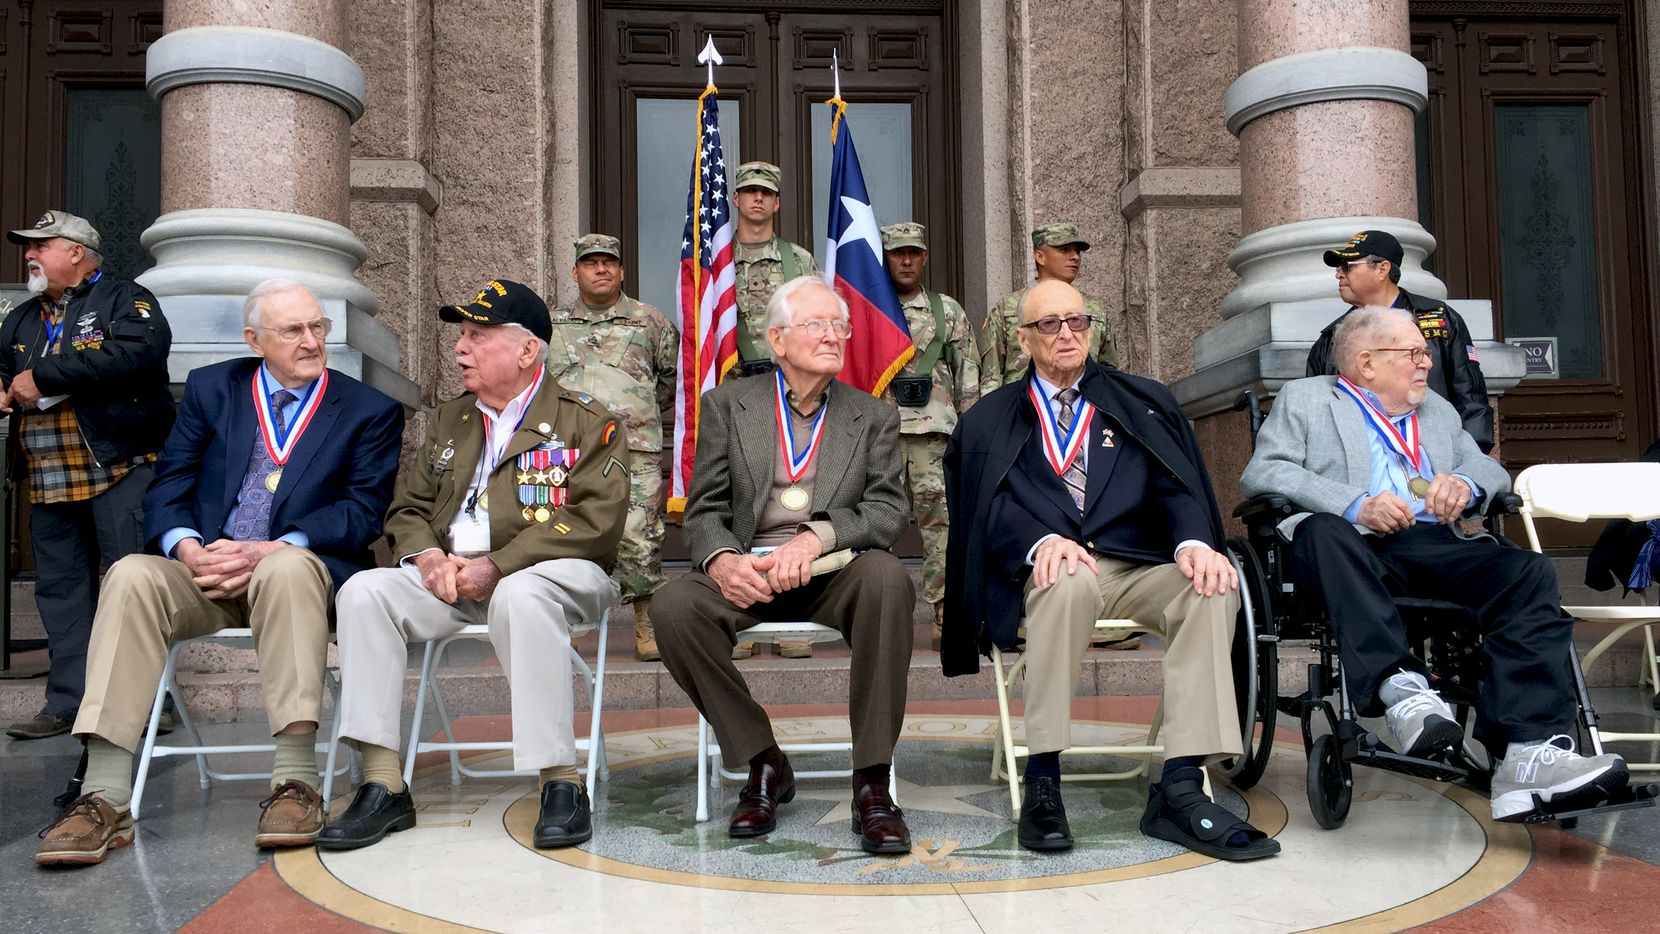 Six Texas veterans were honored Thursday at the Texas Capitol for their role in liberating Nazi concentration camps. From left: Bill Kongable, Birney Havey, Gerald Powell, Chet Rohn and Herb Stern.